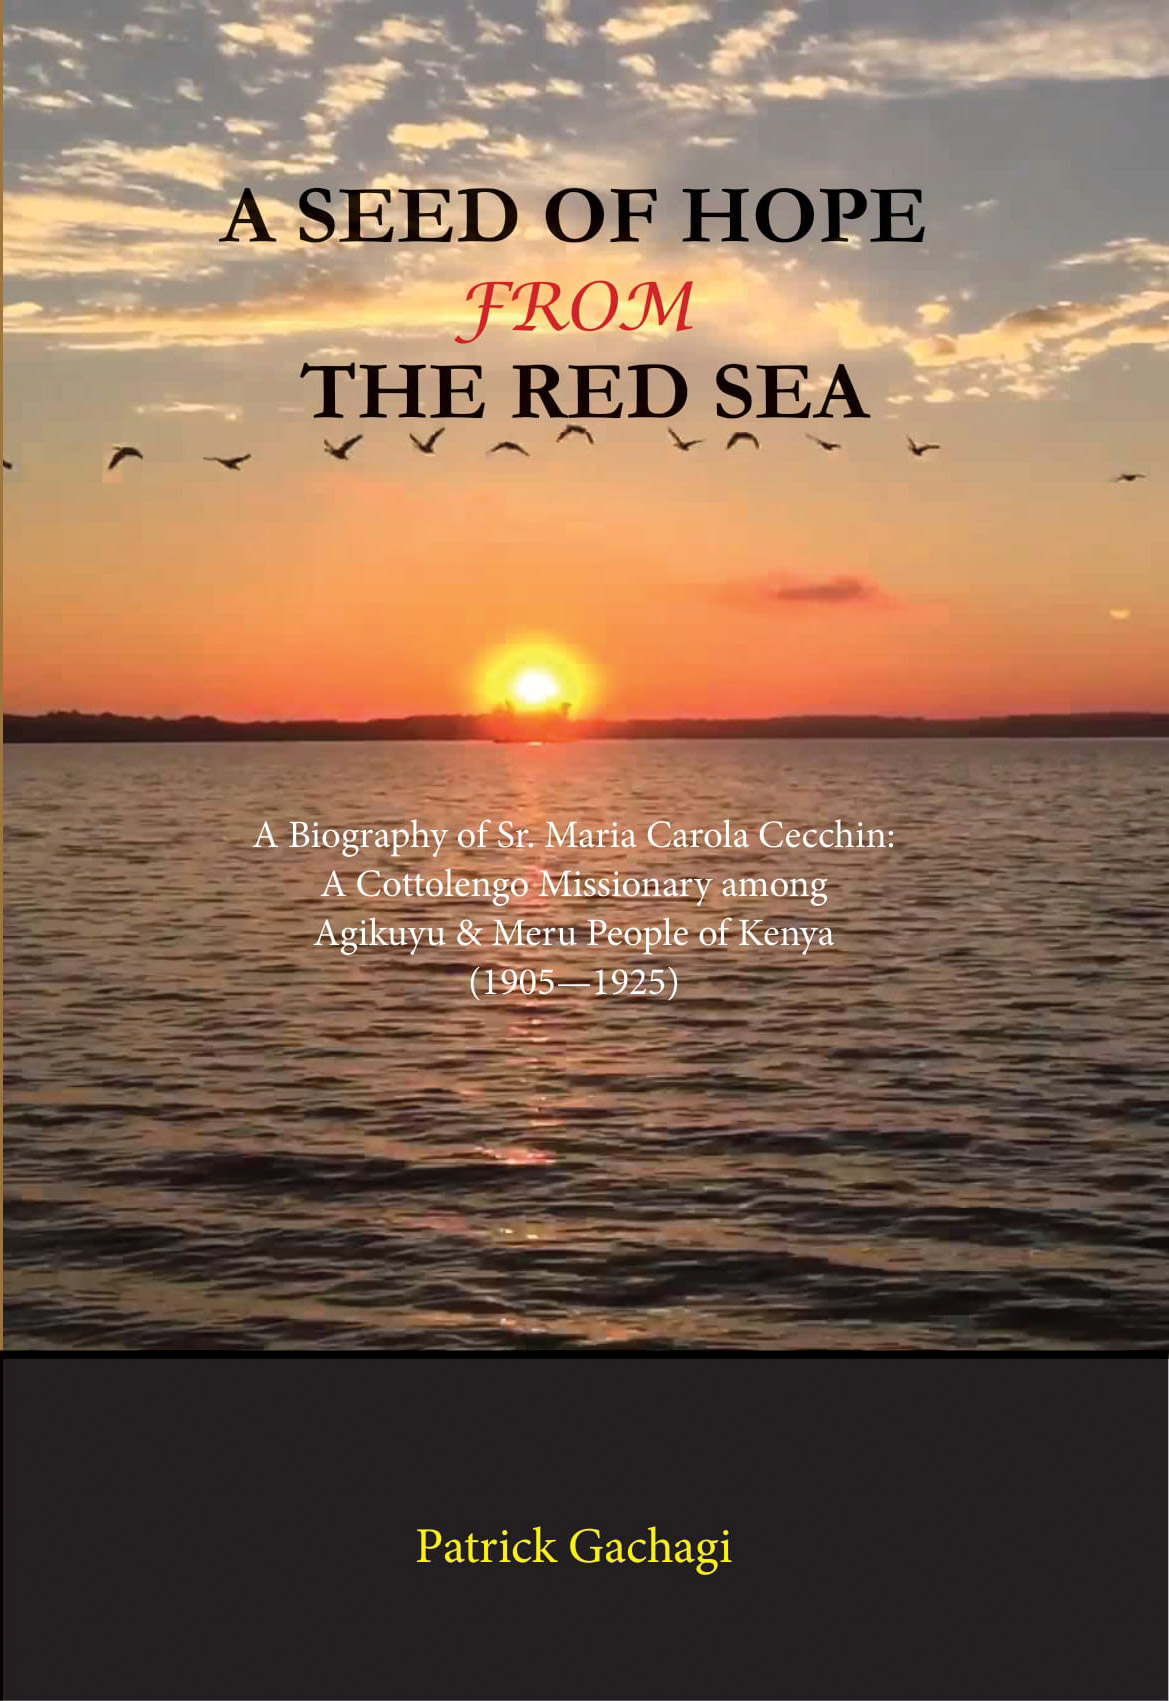 A seed of hope from the red sea Image